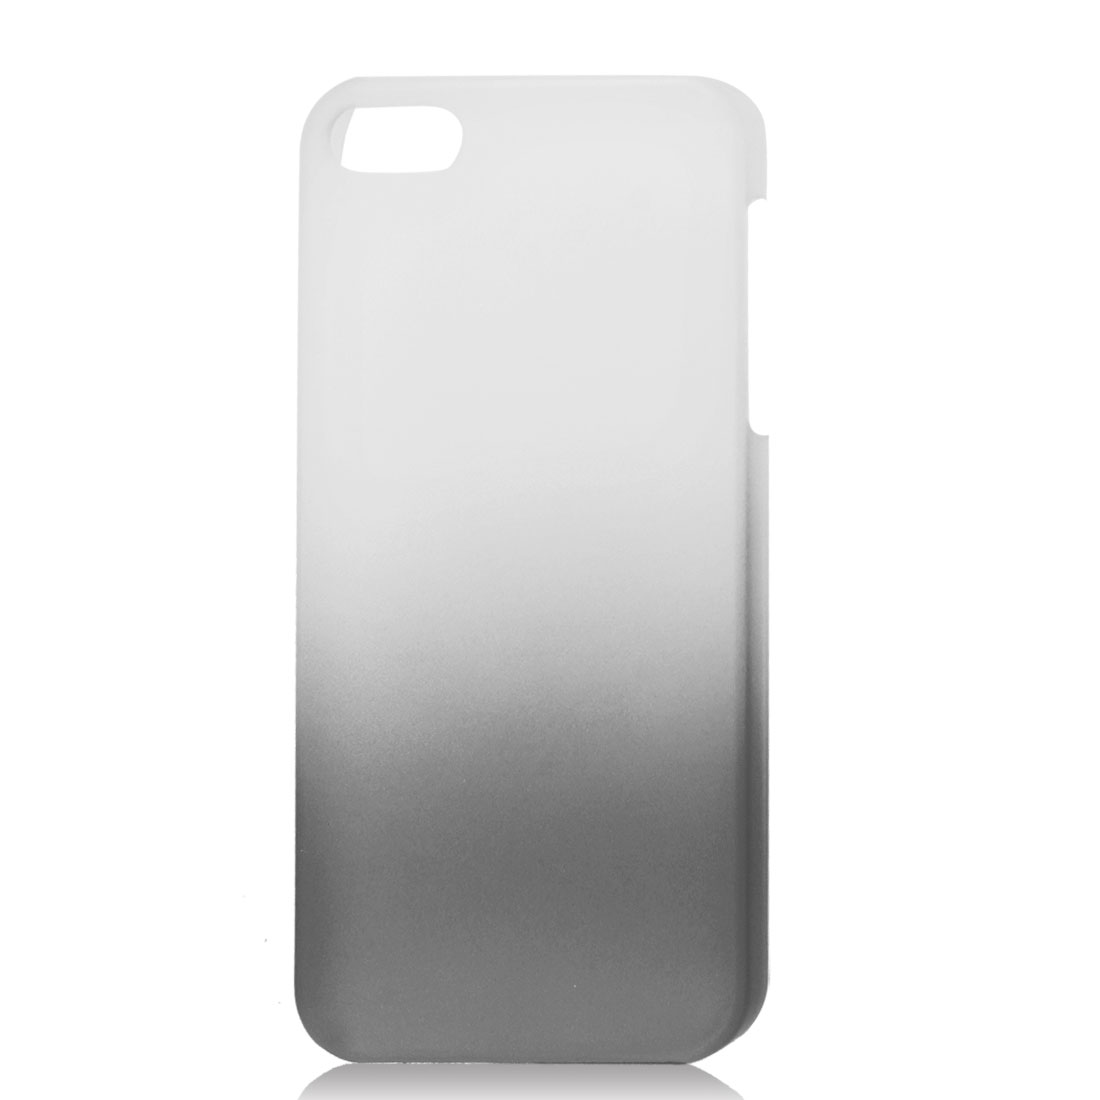 Gradient Dark Gray Translucent Hard Plastic Protective Case Cover for iPhone 5 5G